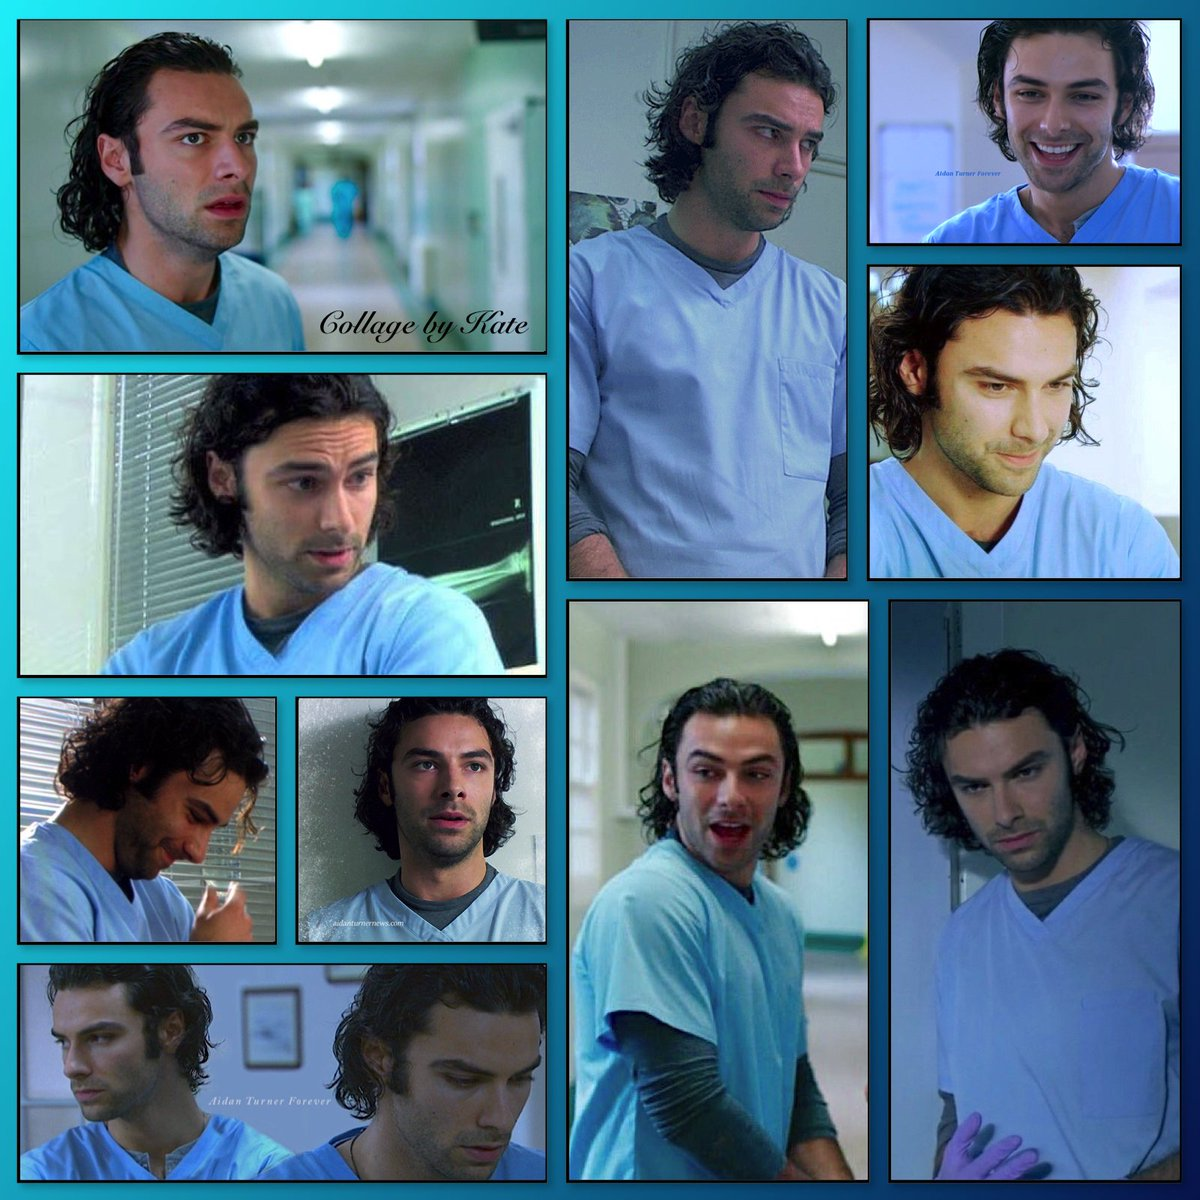 I can not decide, so you get two for one #AidanCrew  Happy #MitchellMonday everyone! There has never been a more handsome hospital cleaner than Mitchell! #BeingHumanUK #AidanTurner<br>http://pic.twitter.com/MZd6lyUTvG